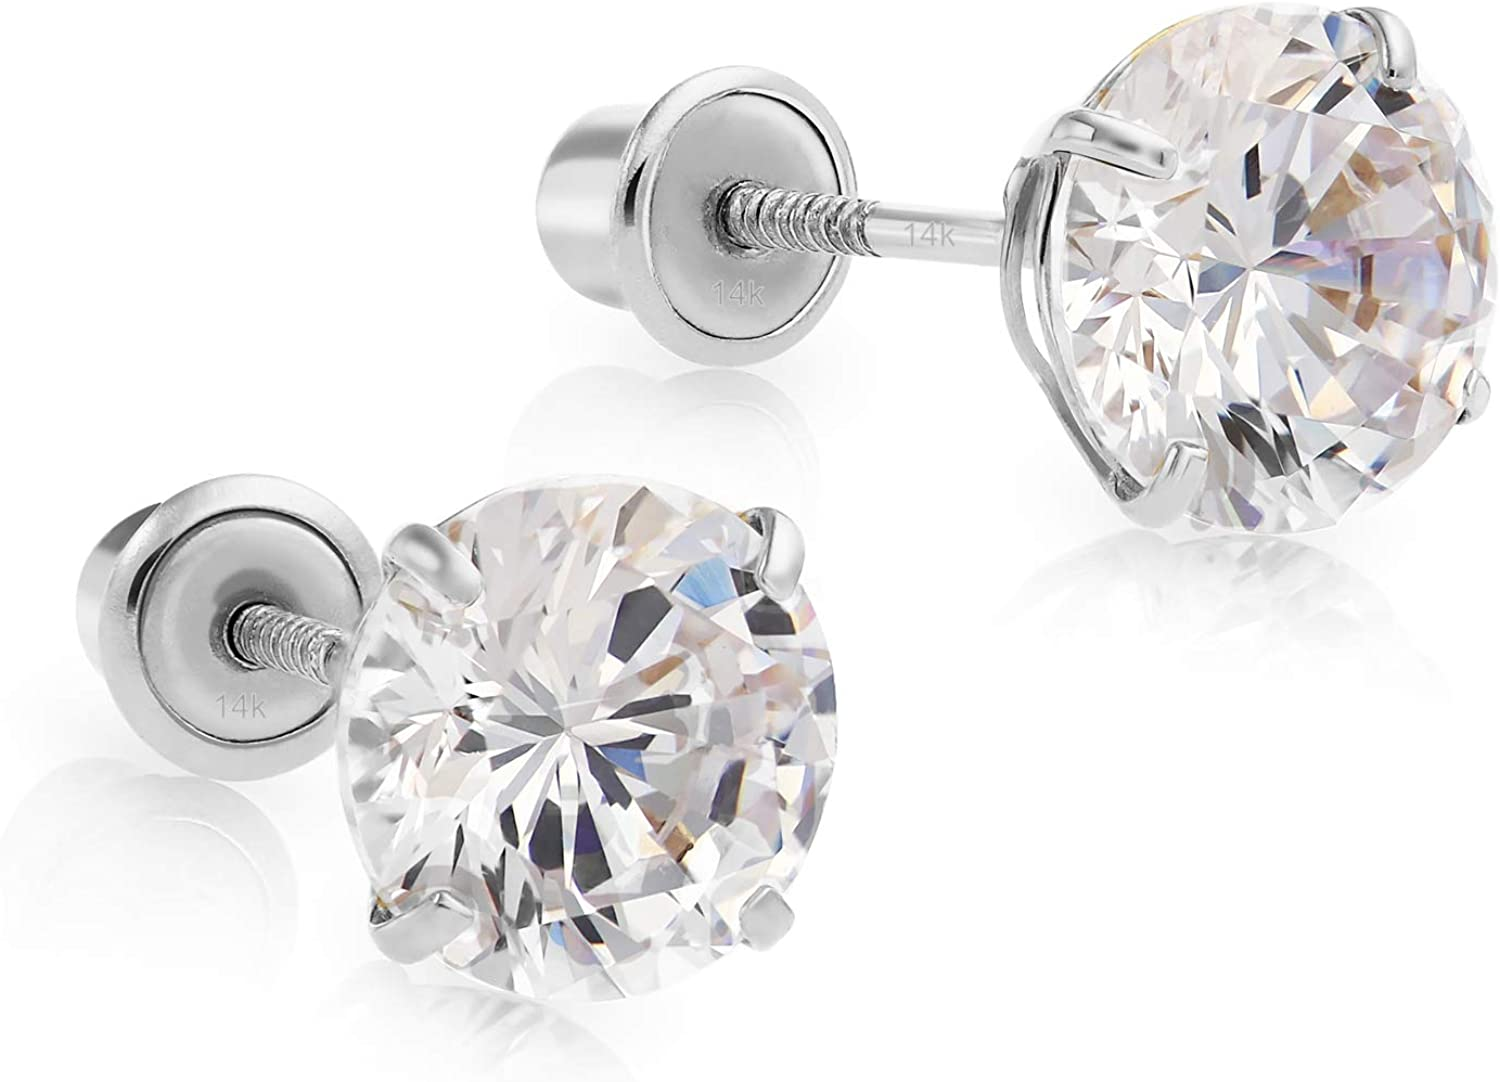 14k White Spring new work Max 60% OFF Gold Made with Cubic Zirconia Solitaire Stud SWAROVSKI